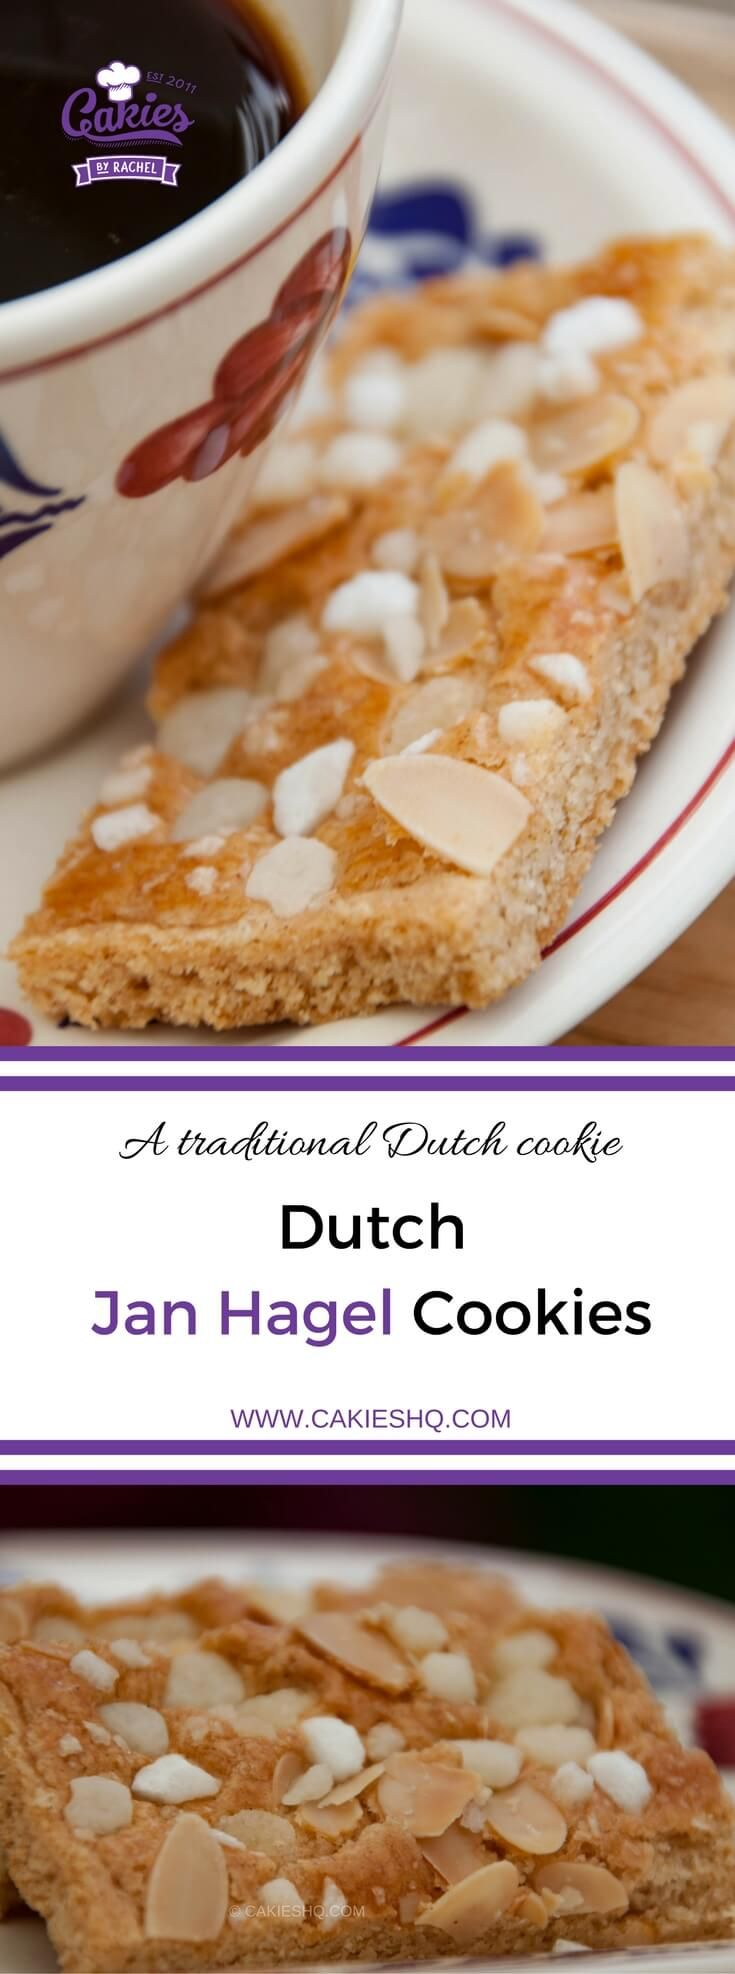 Jan Hagel Cookies -- traditional Dutch shortbread cookies spiced with cinnamon, topped with almonds and pearl sugar.  